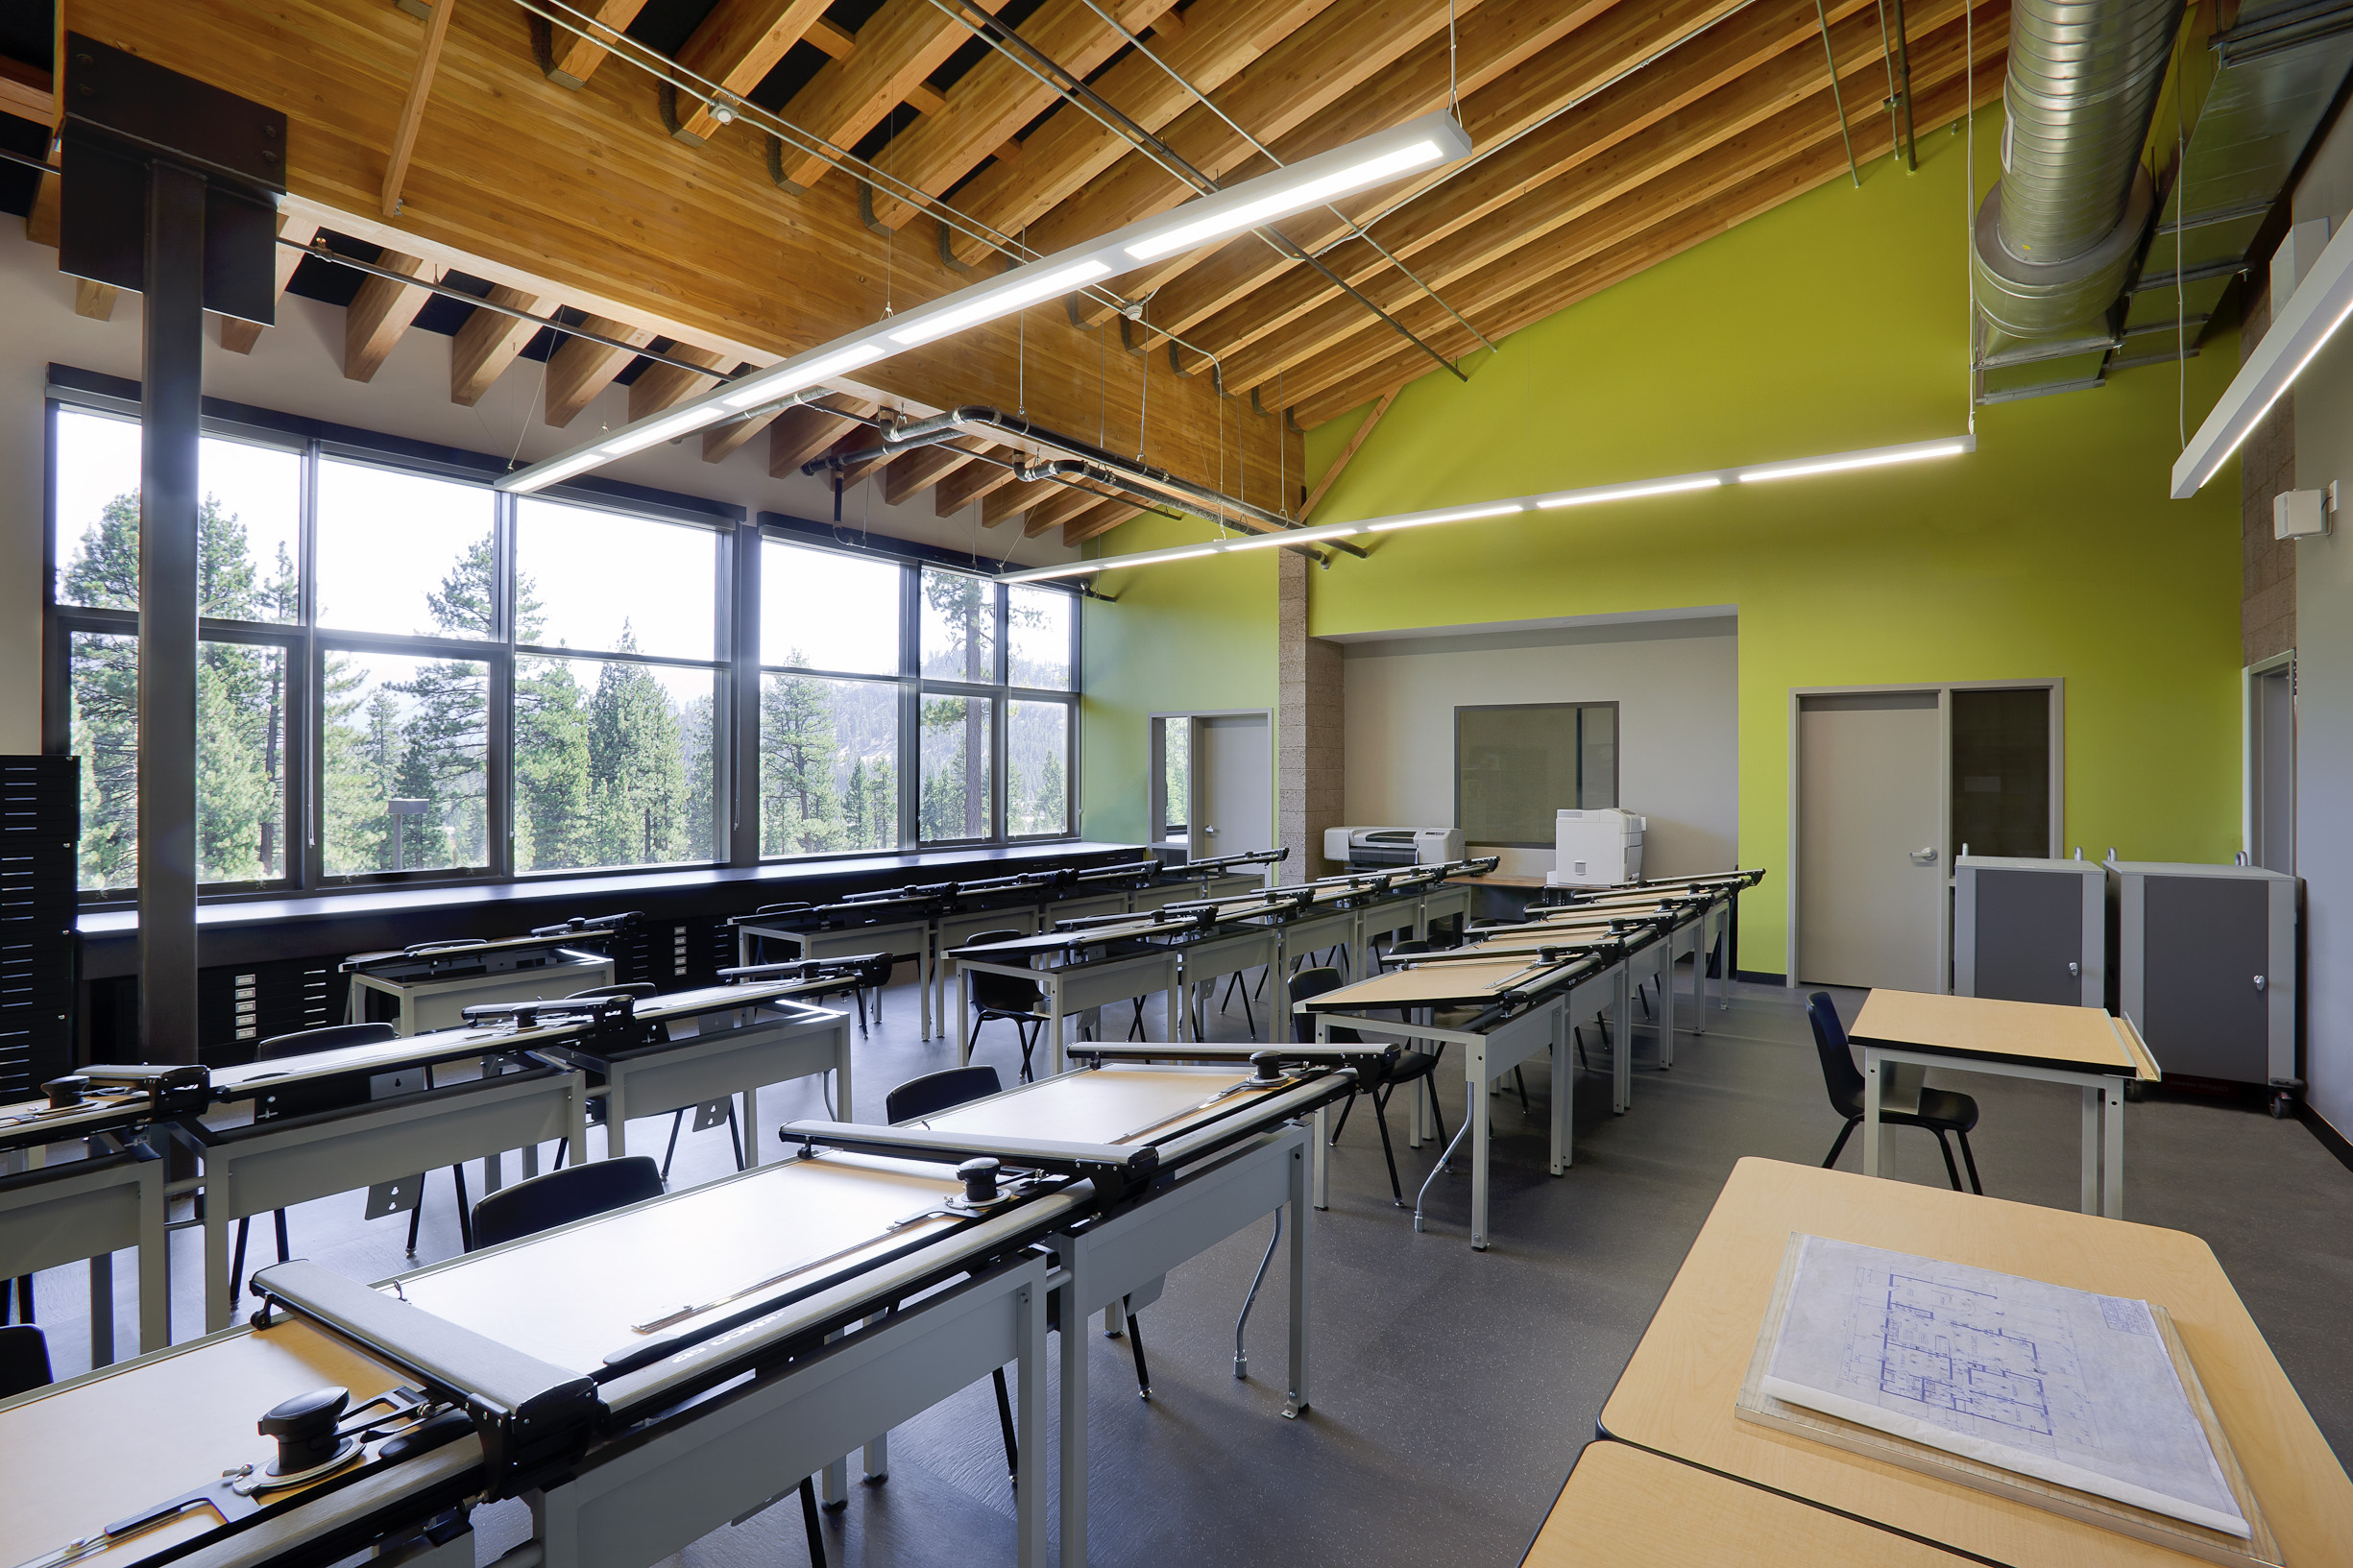 Virtual Classroom Architecture Design ~ School design heavily awarded by orange county architects